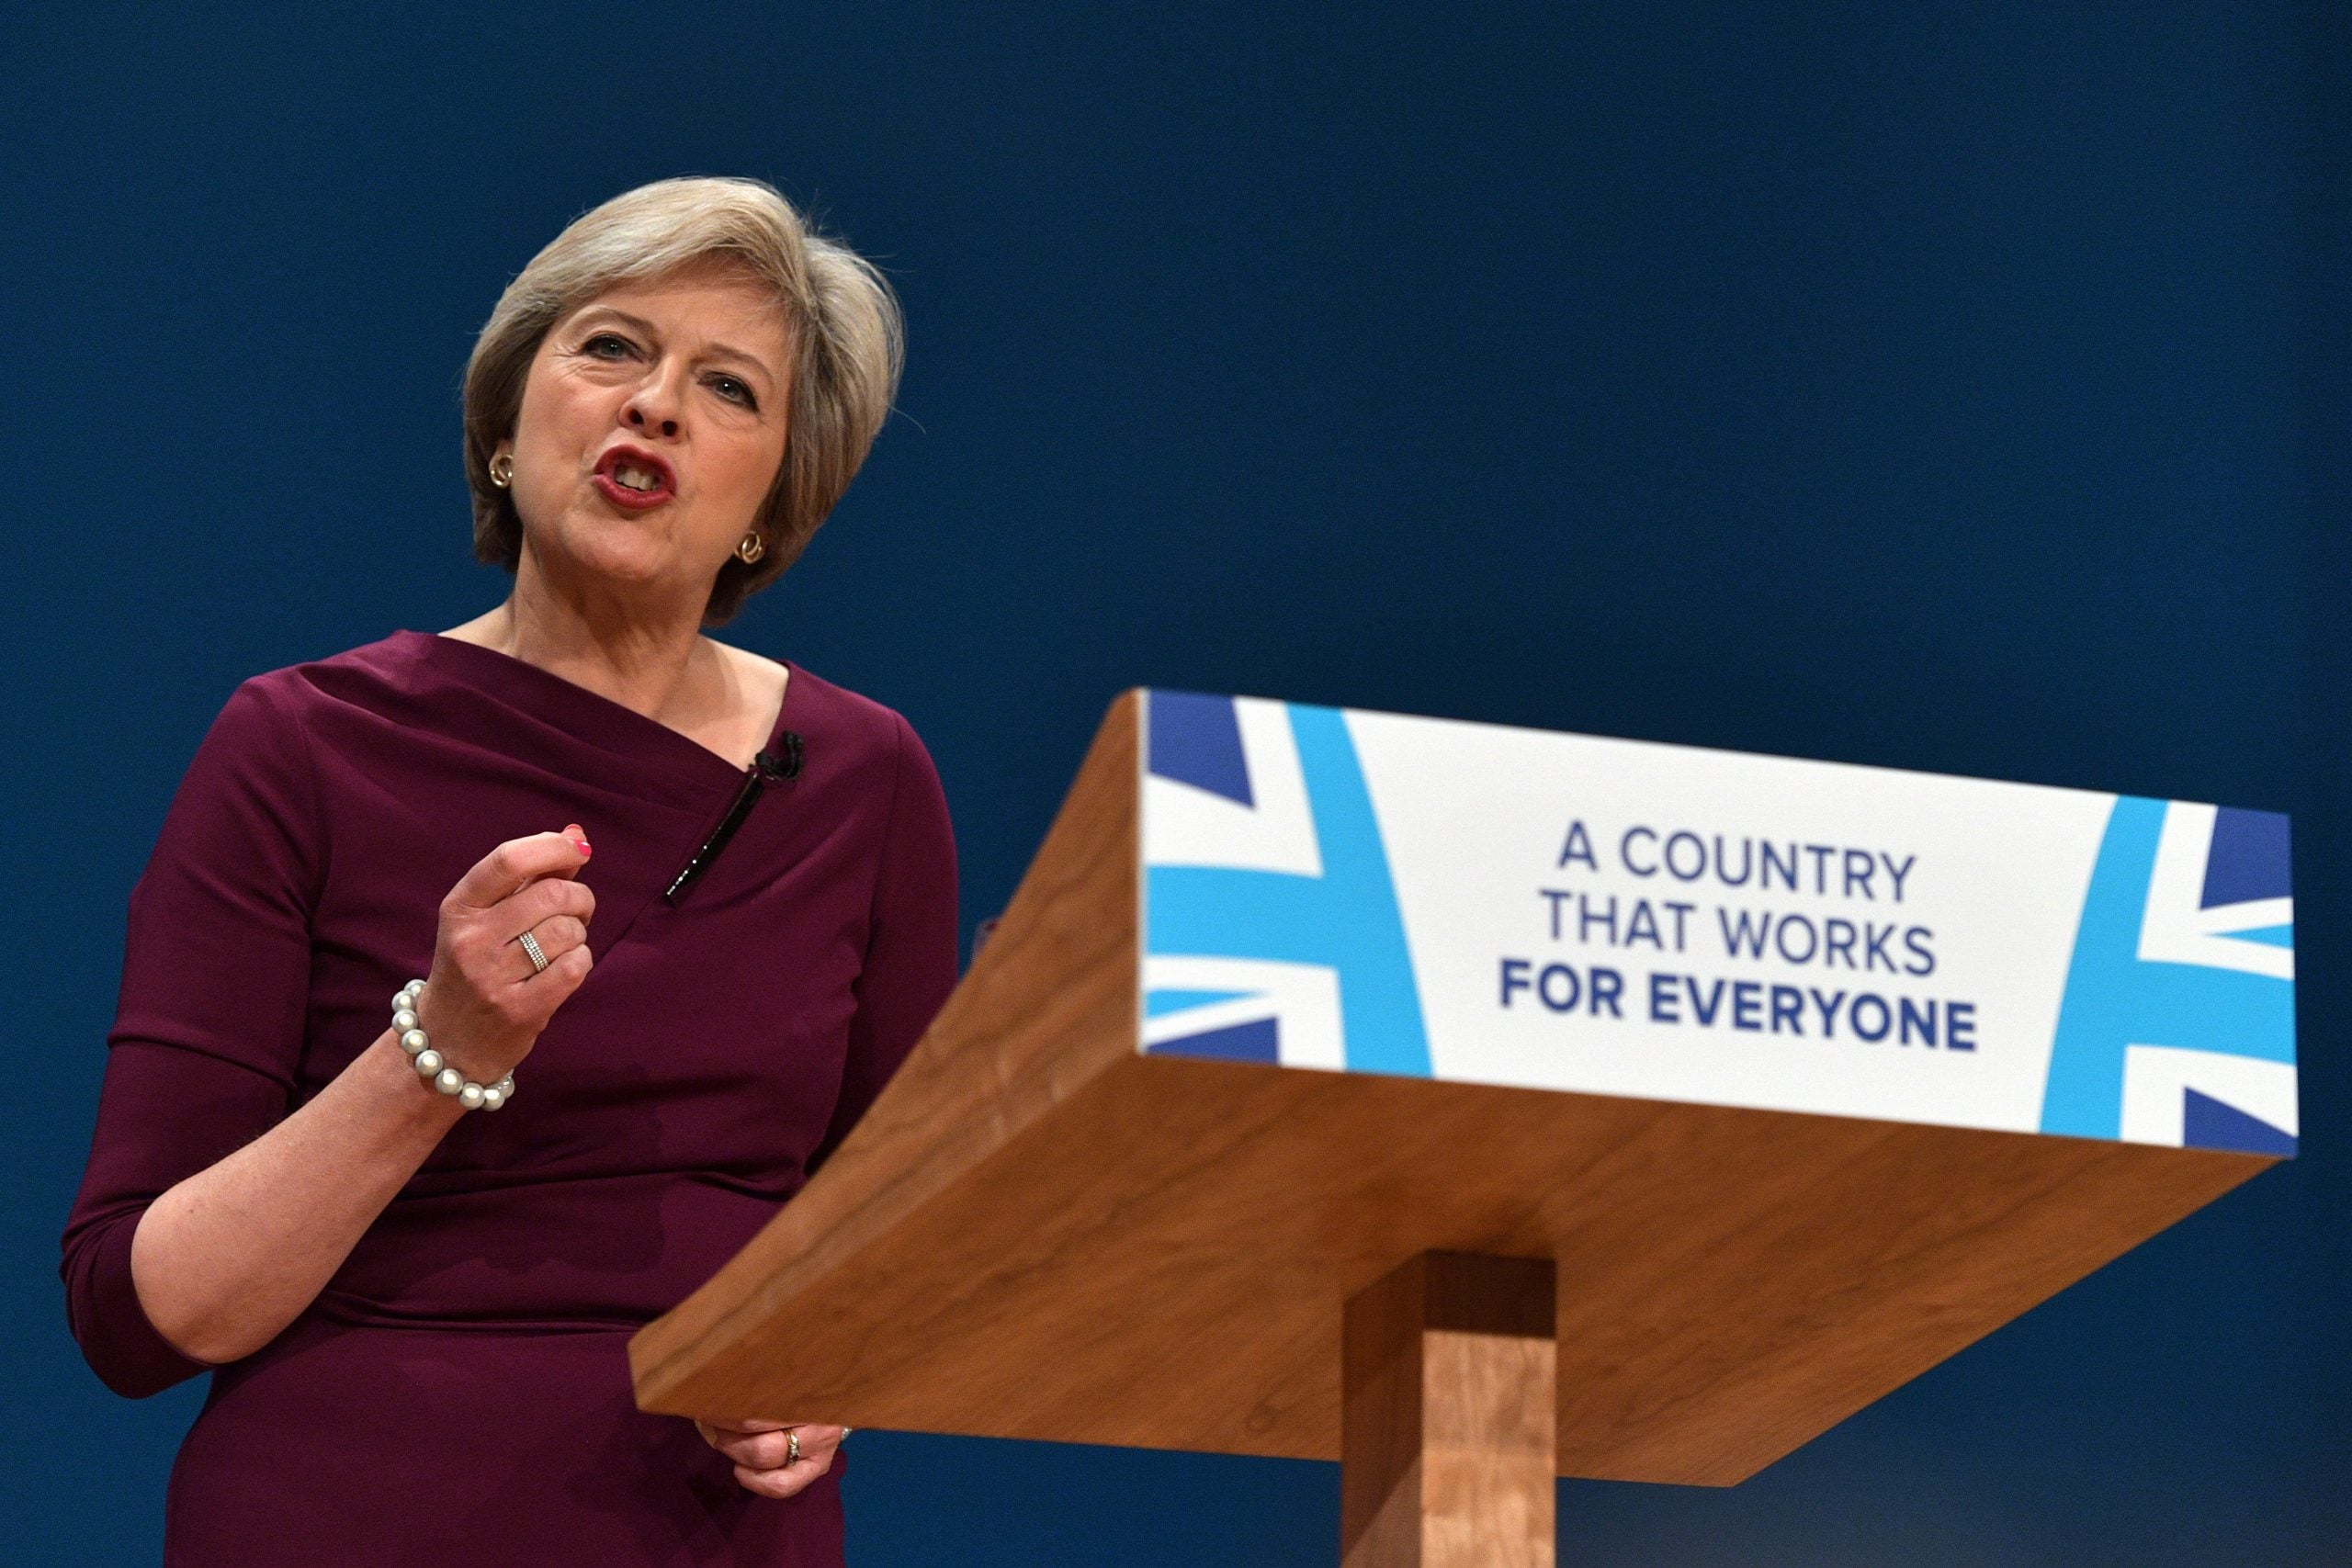 The Tories' grip on power will remain tenuous while Theresa May refuses to groom a successor